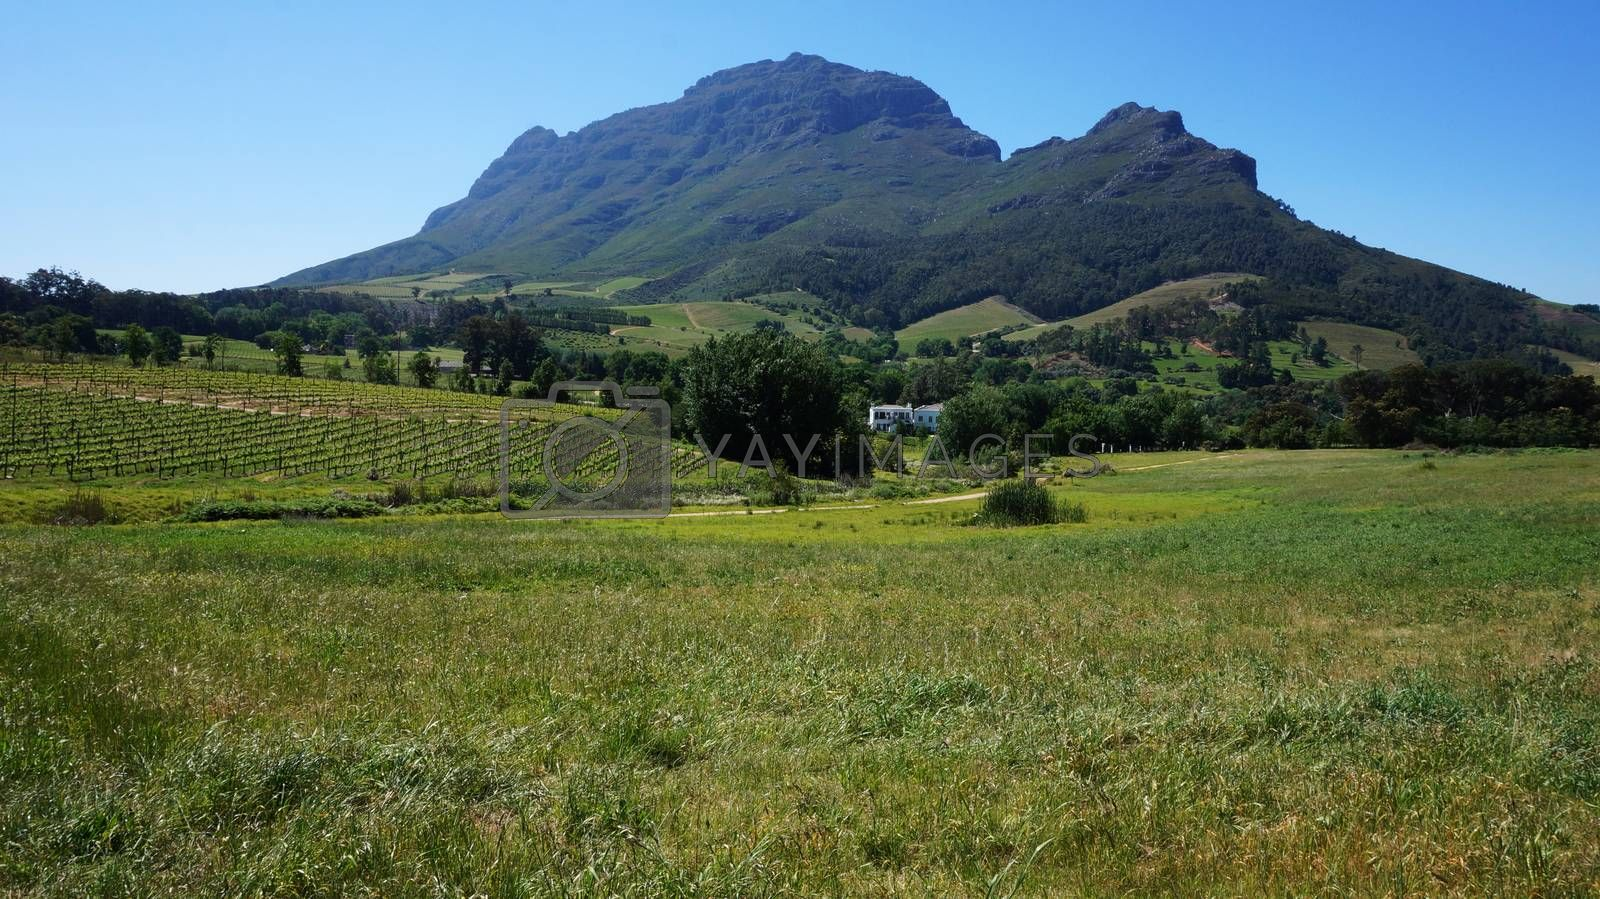 Mountains in Stellenbosch wine region, outside of Cape Town, Sou by tang90246